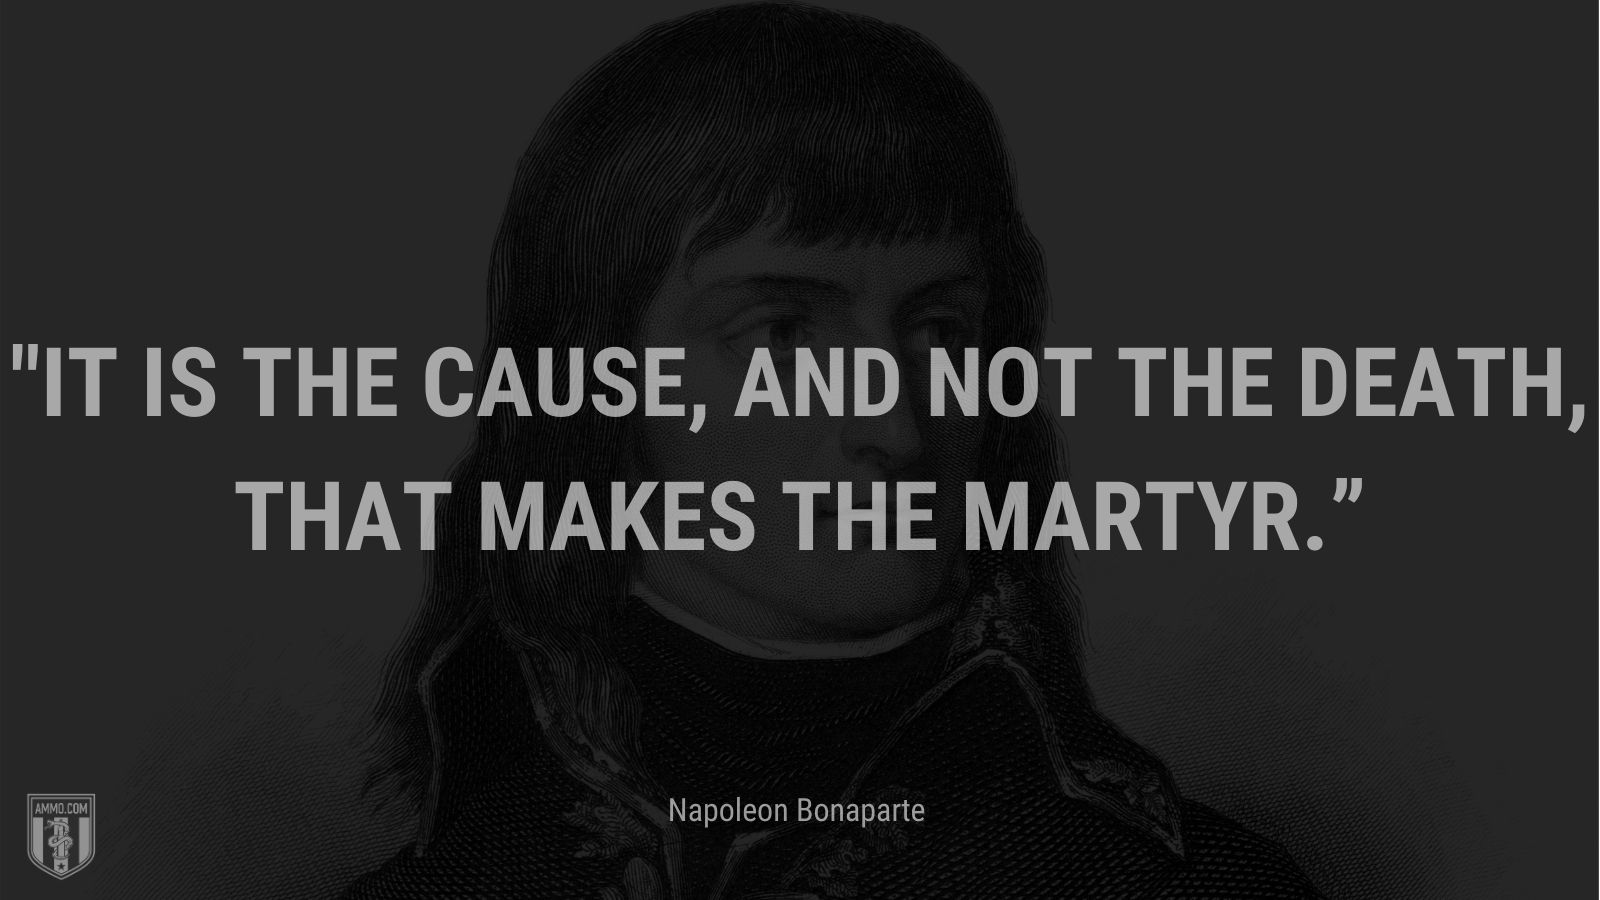 """""""It is the cause, and not the death, that makes the martyr."""" - Napoleon Bonaparte"""